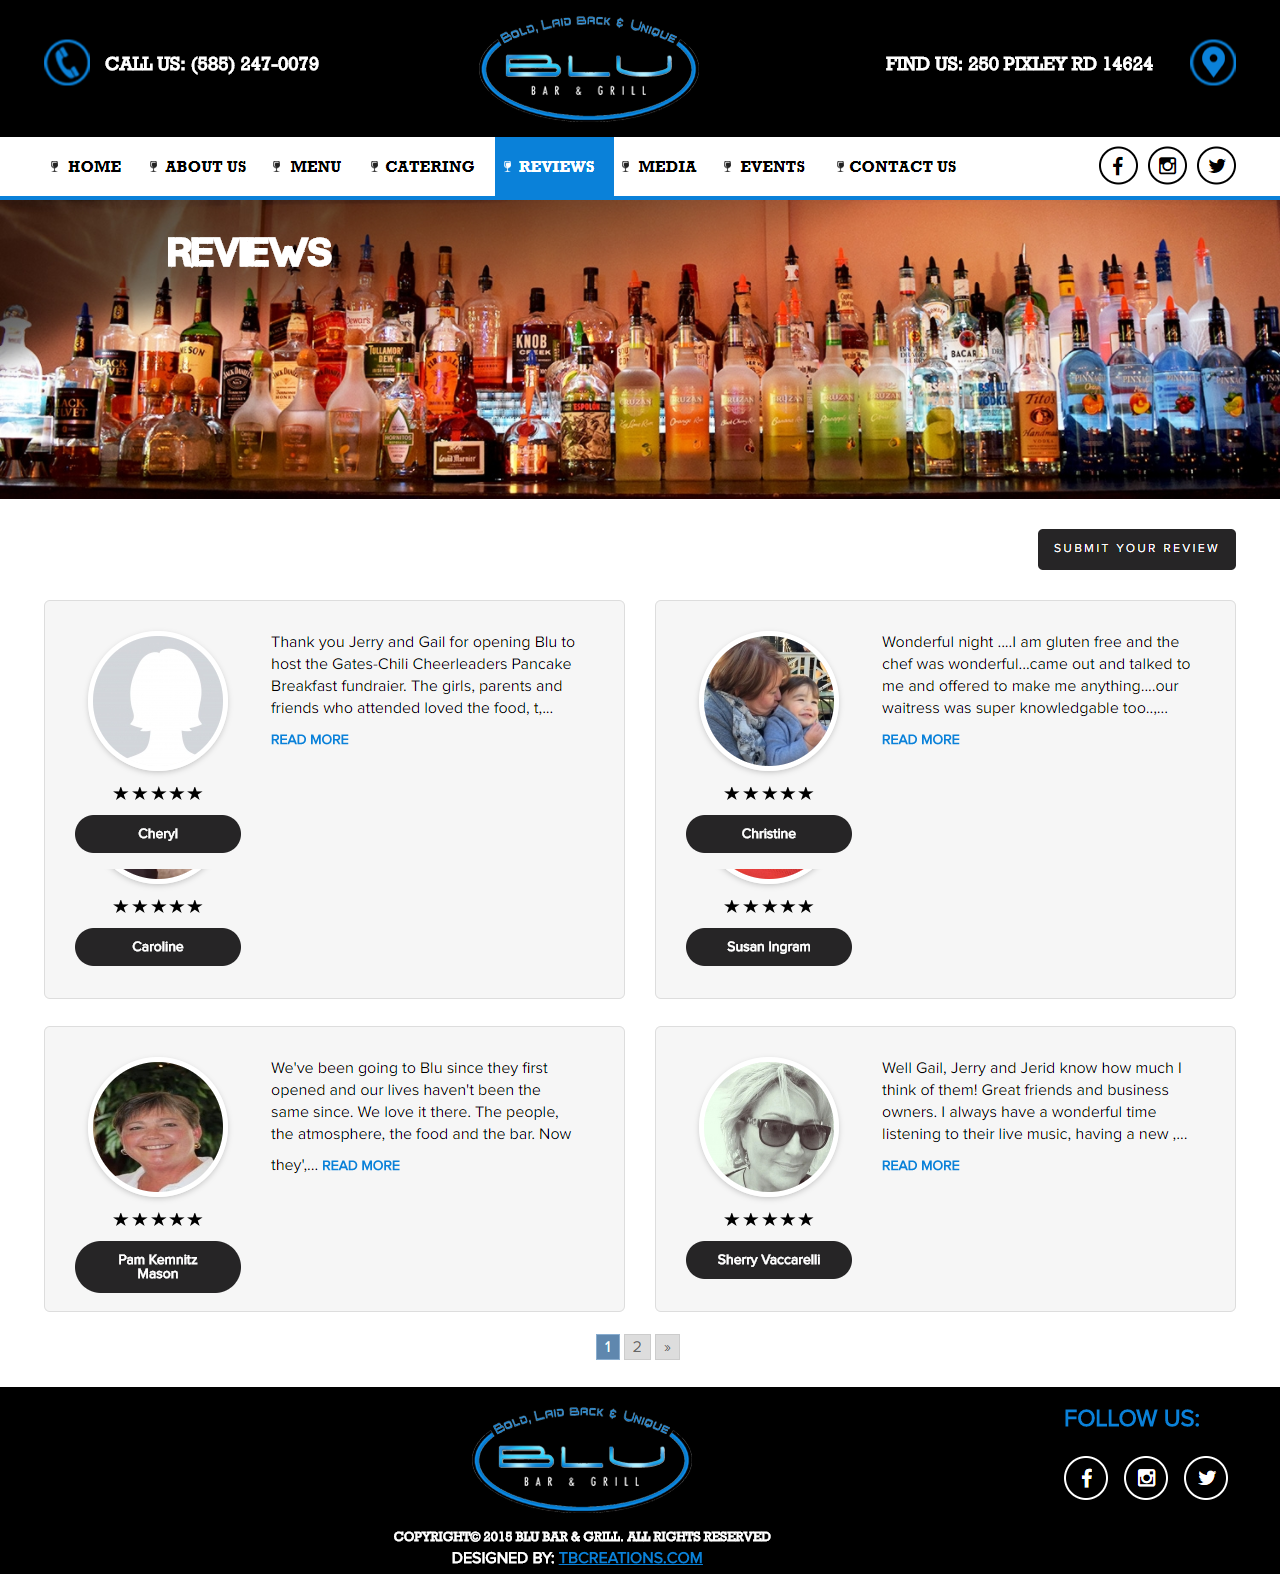 BLU Bar & Grill Website